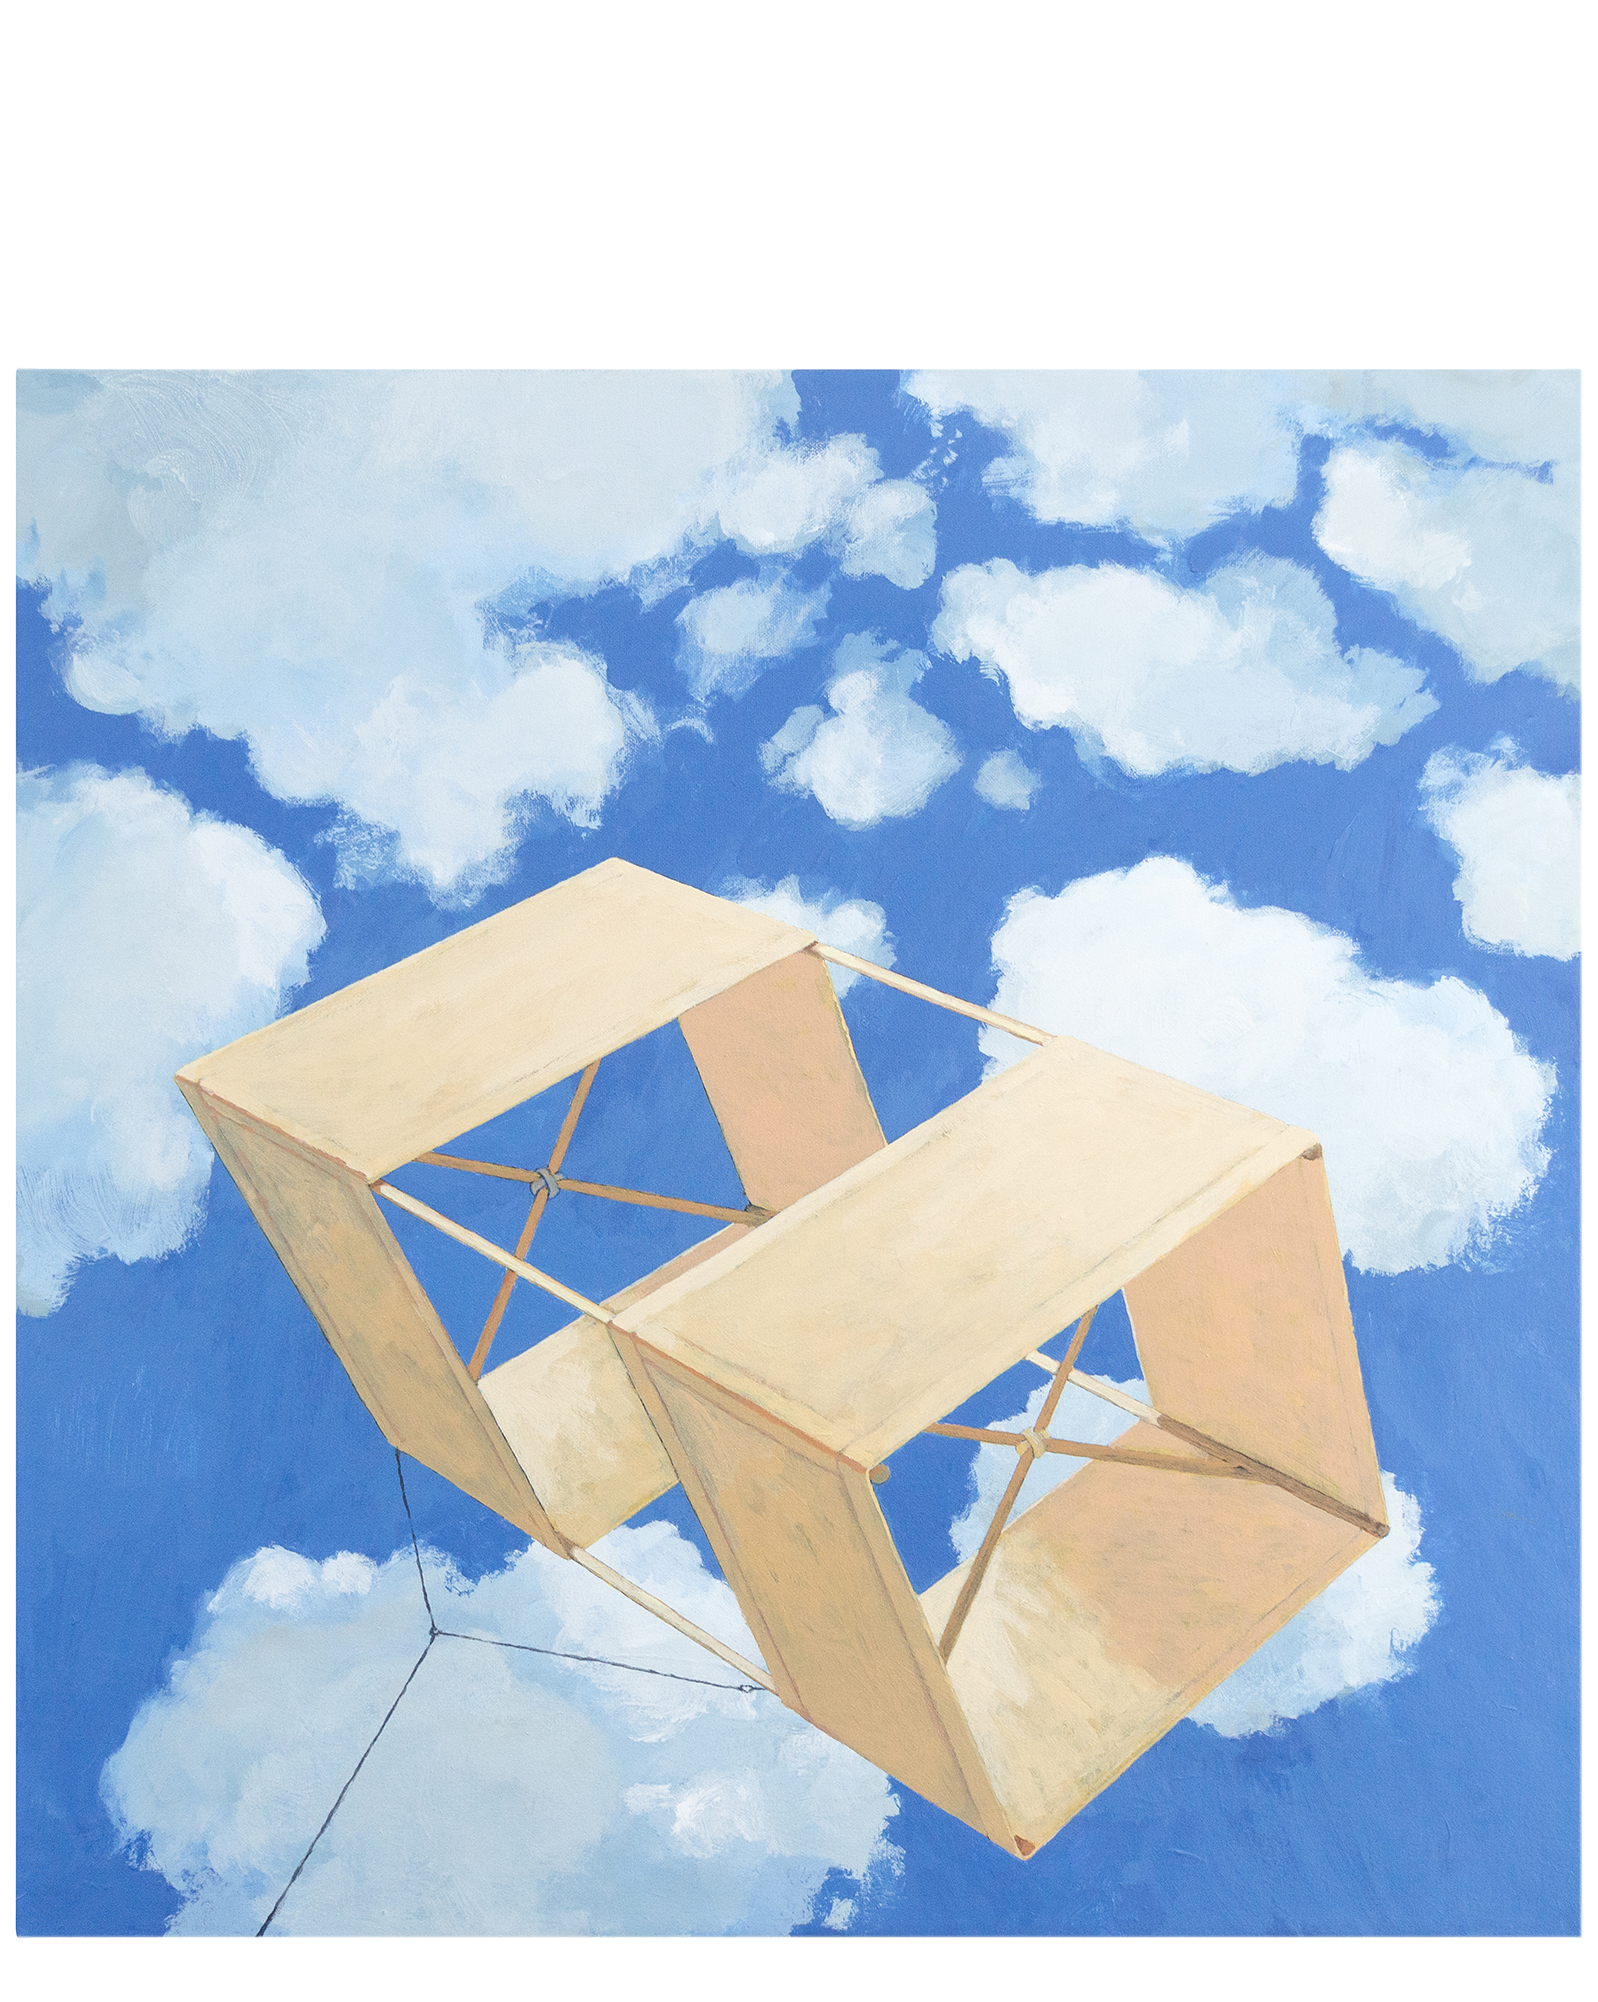 """Box kite"" by Jeremy Thornton,"